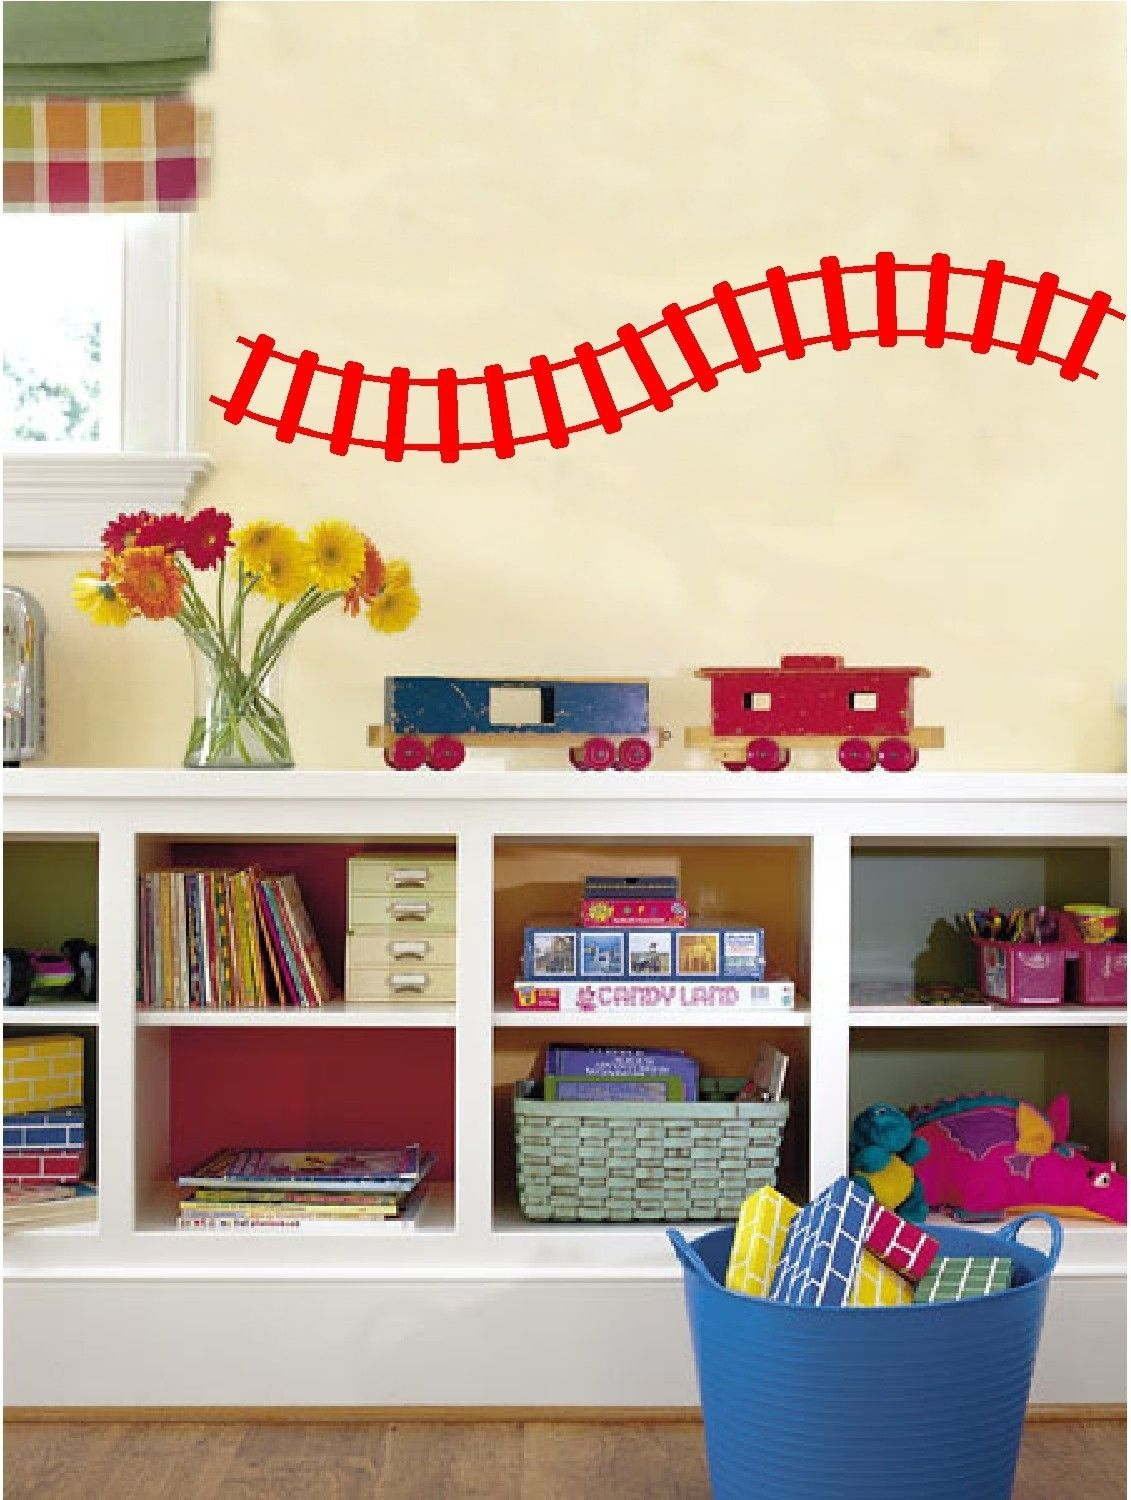 Train Track Wall Decals Stickers Removable Vinyl Wall Art.